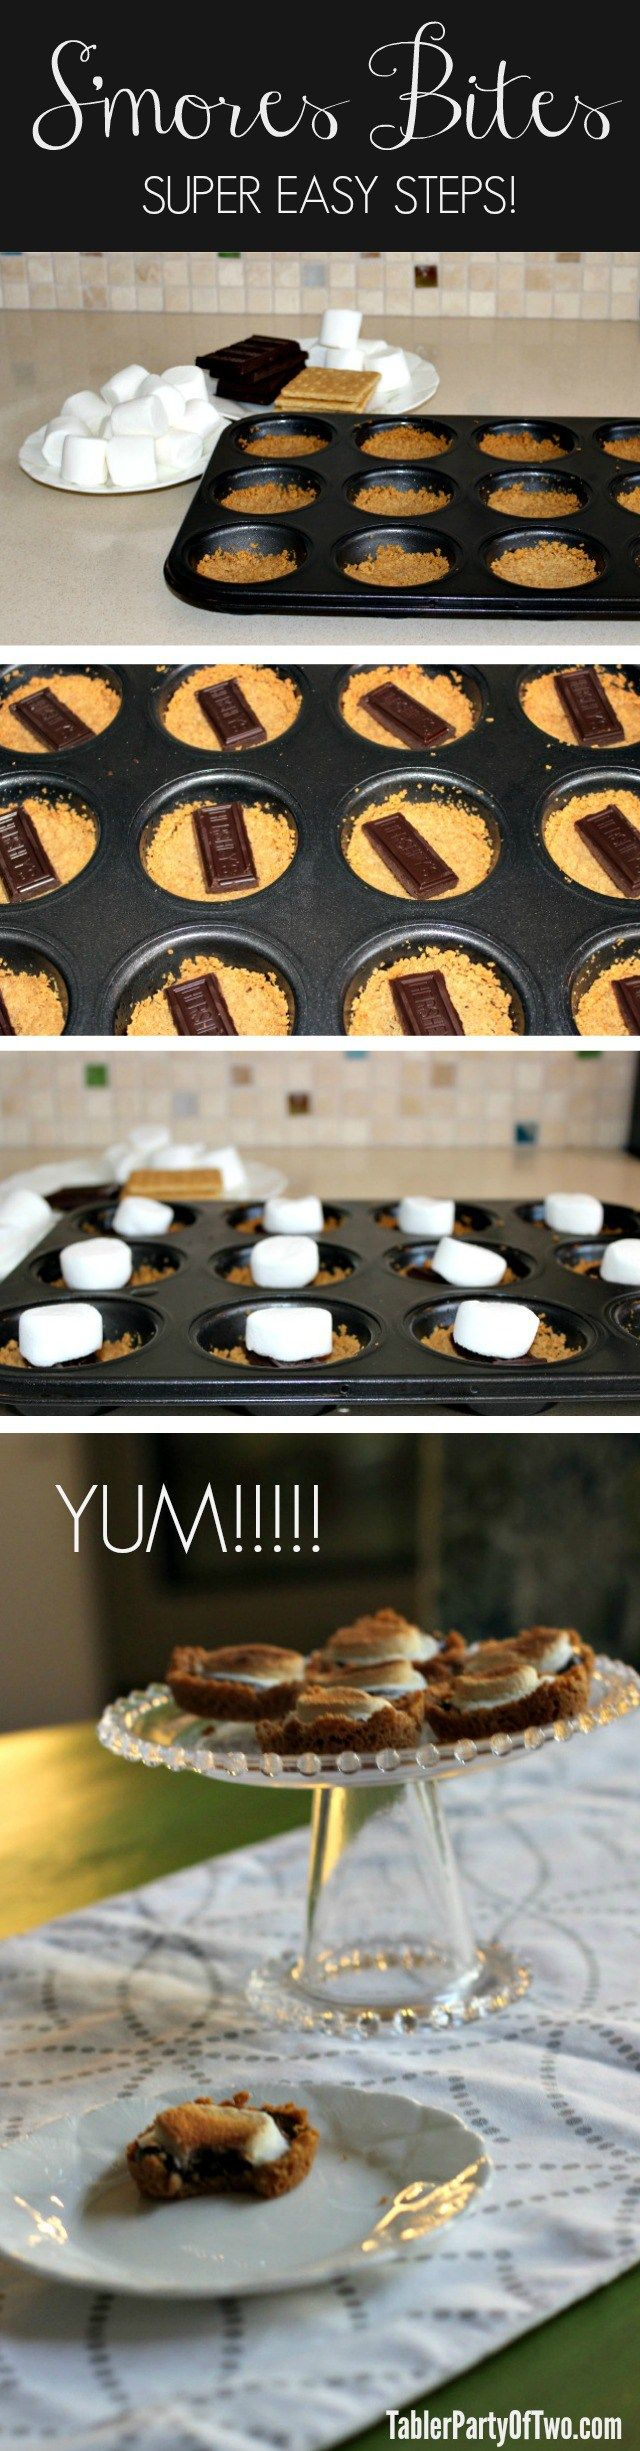 Whoa! These S'mores Bites are AMAZING! And it's a super easy dessert to prepare. Check out all the steps here! You won't be disappointed. :) TablerPartyofTwo.com